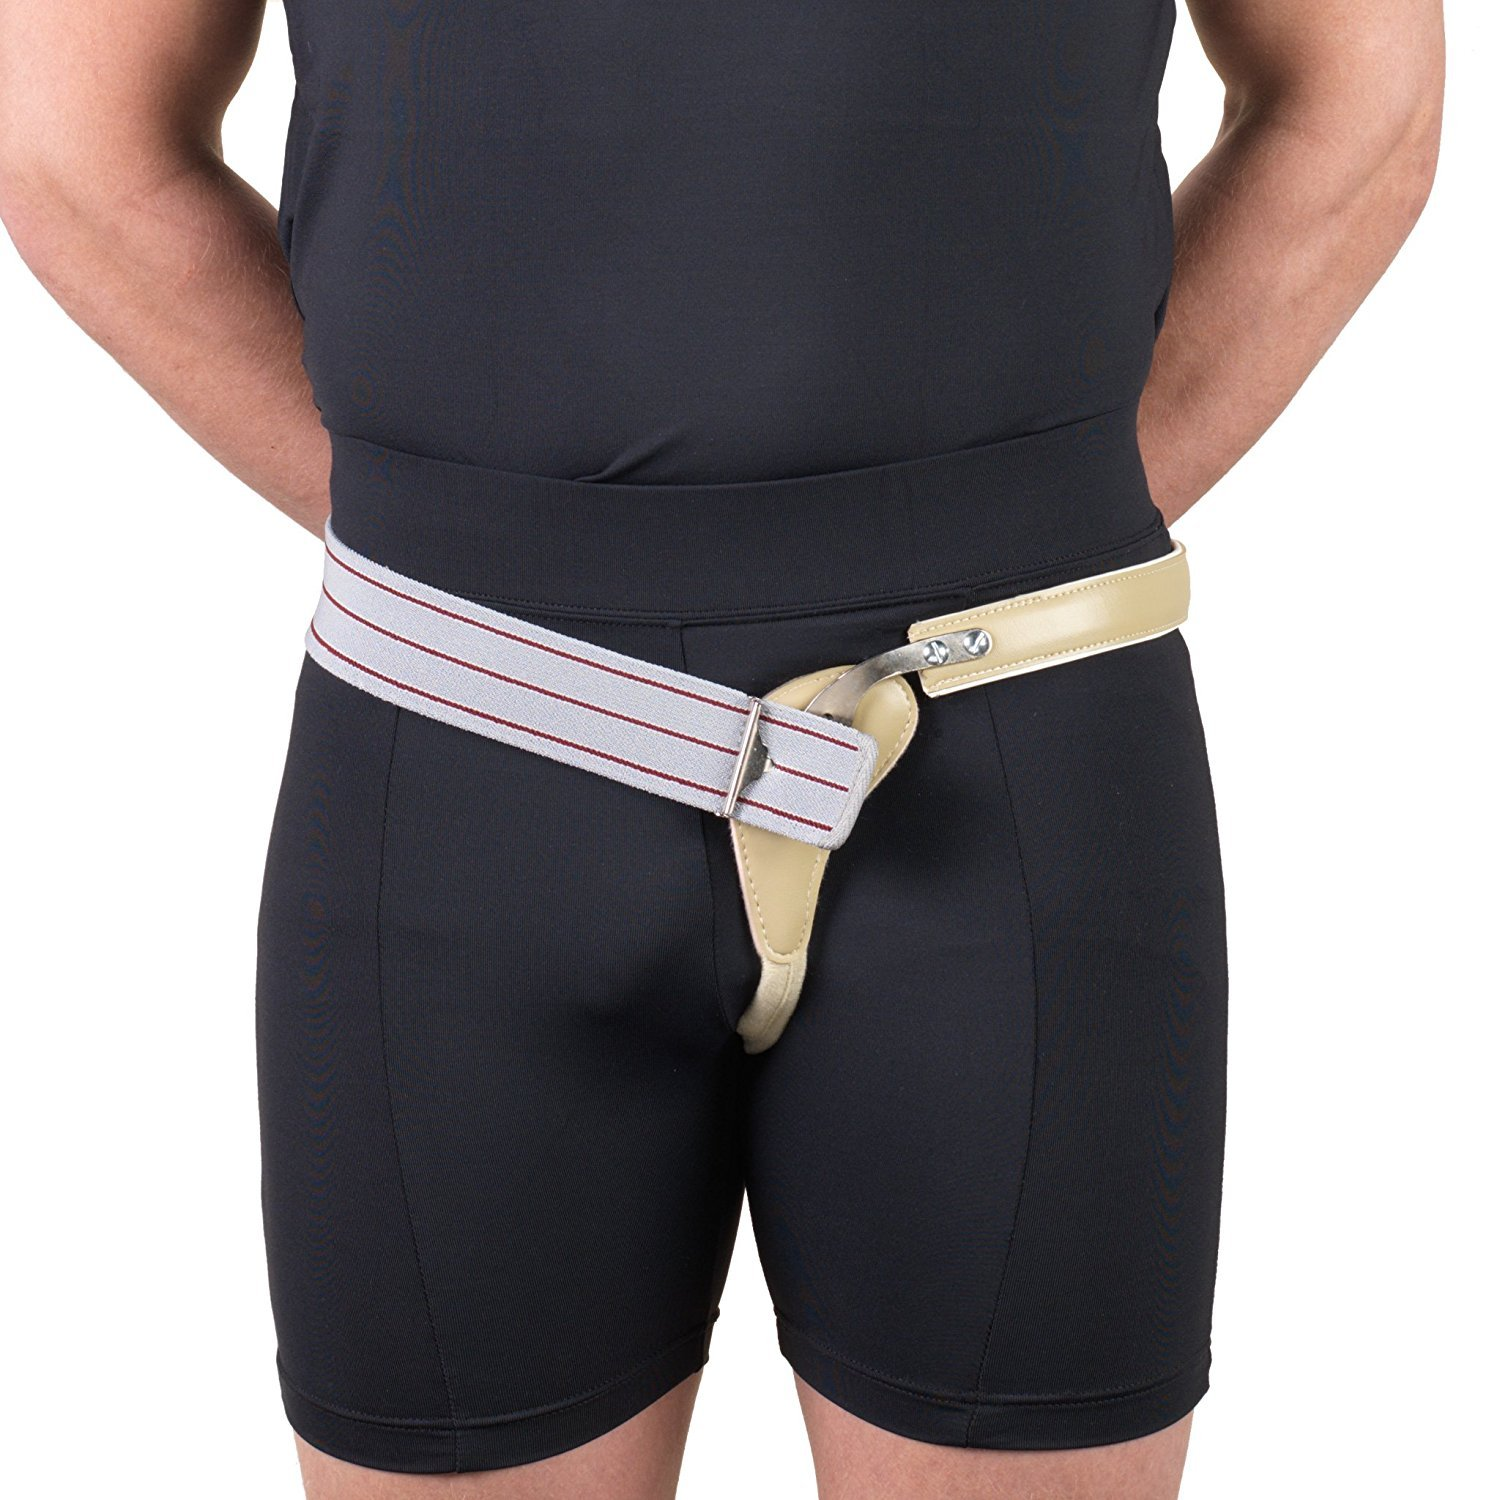 Hernia Truss, Single Spring, Scrotal Pad Compression, Elastic, 44 inch hip (Right)